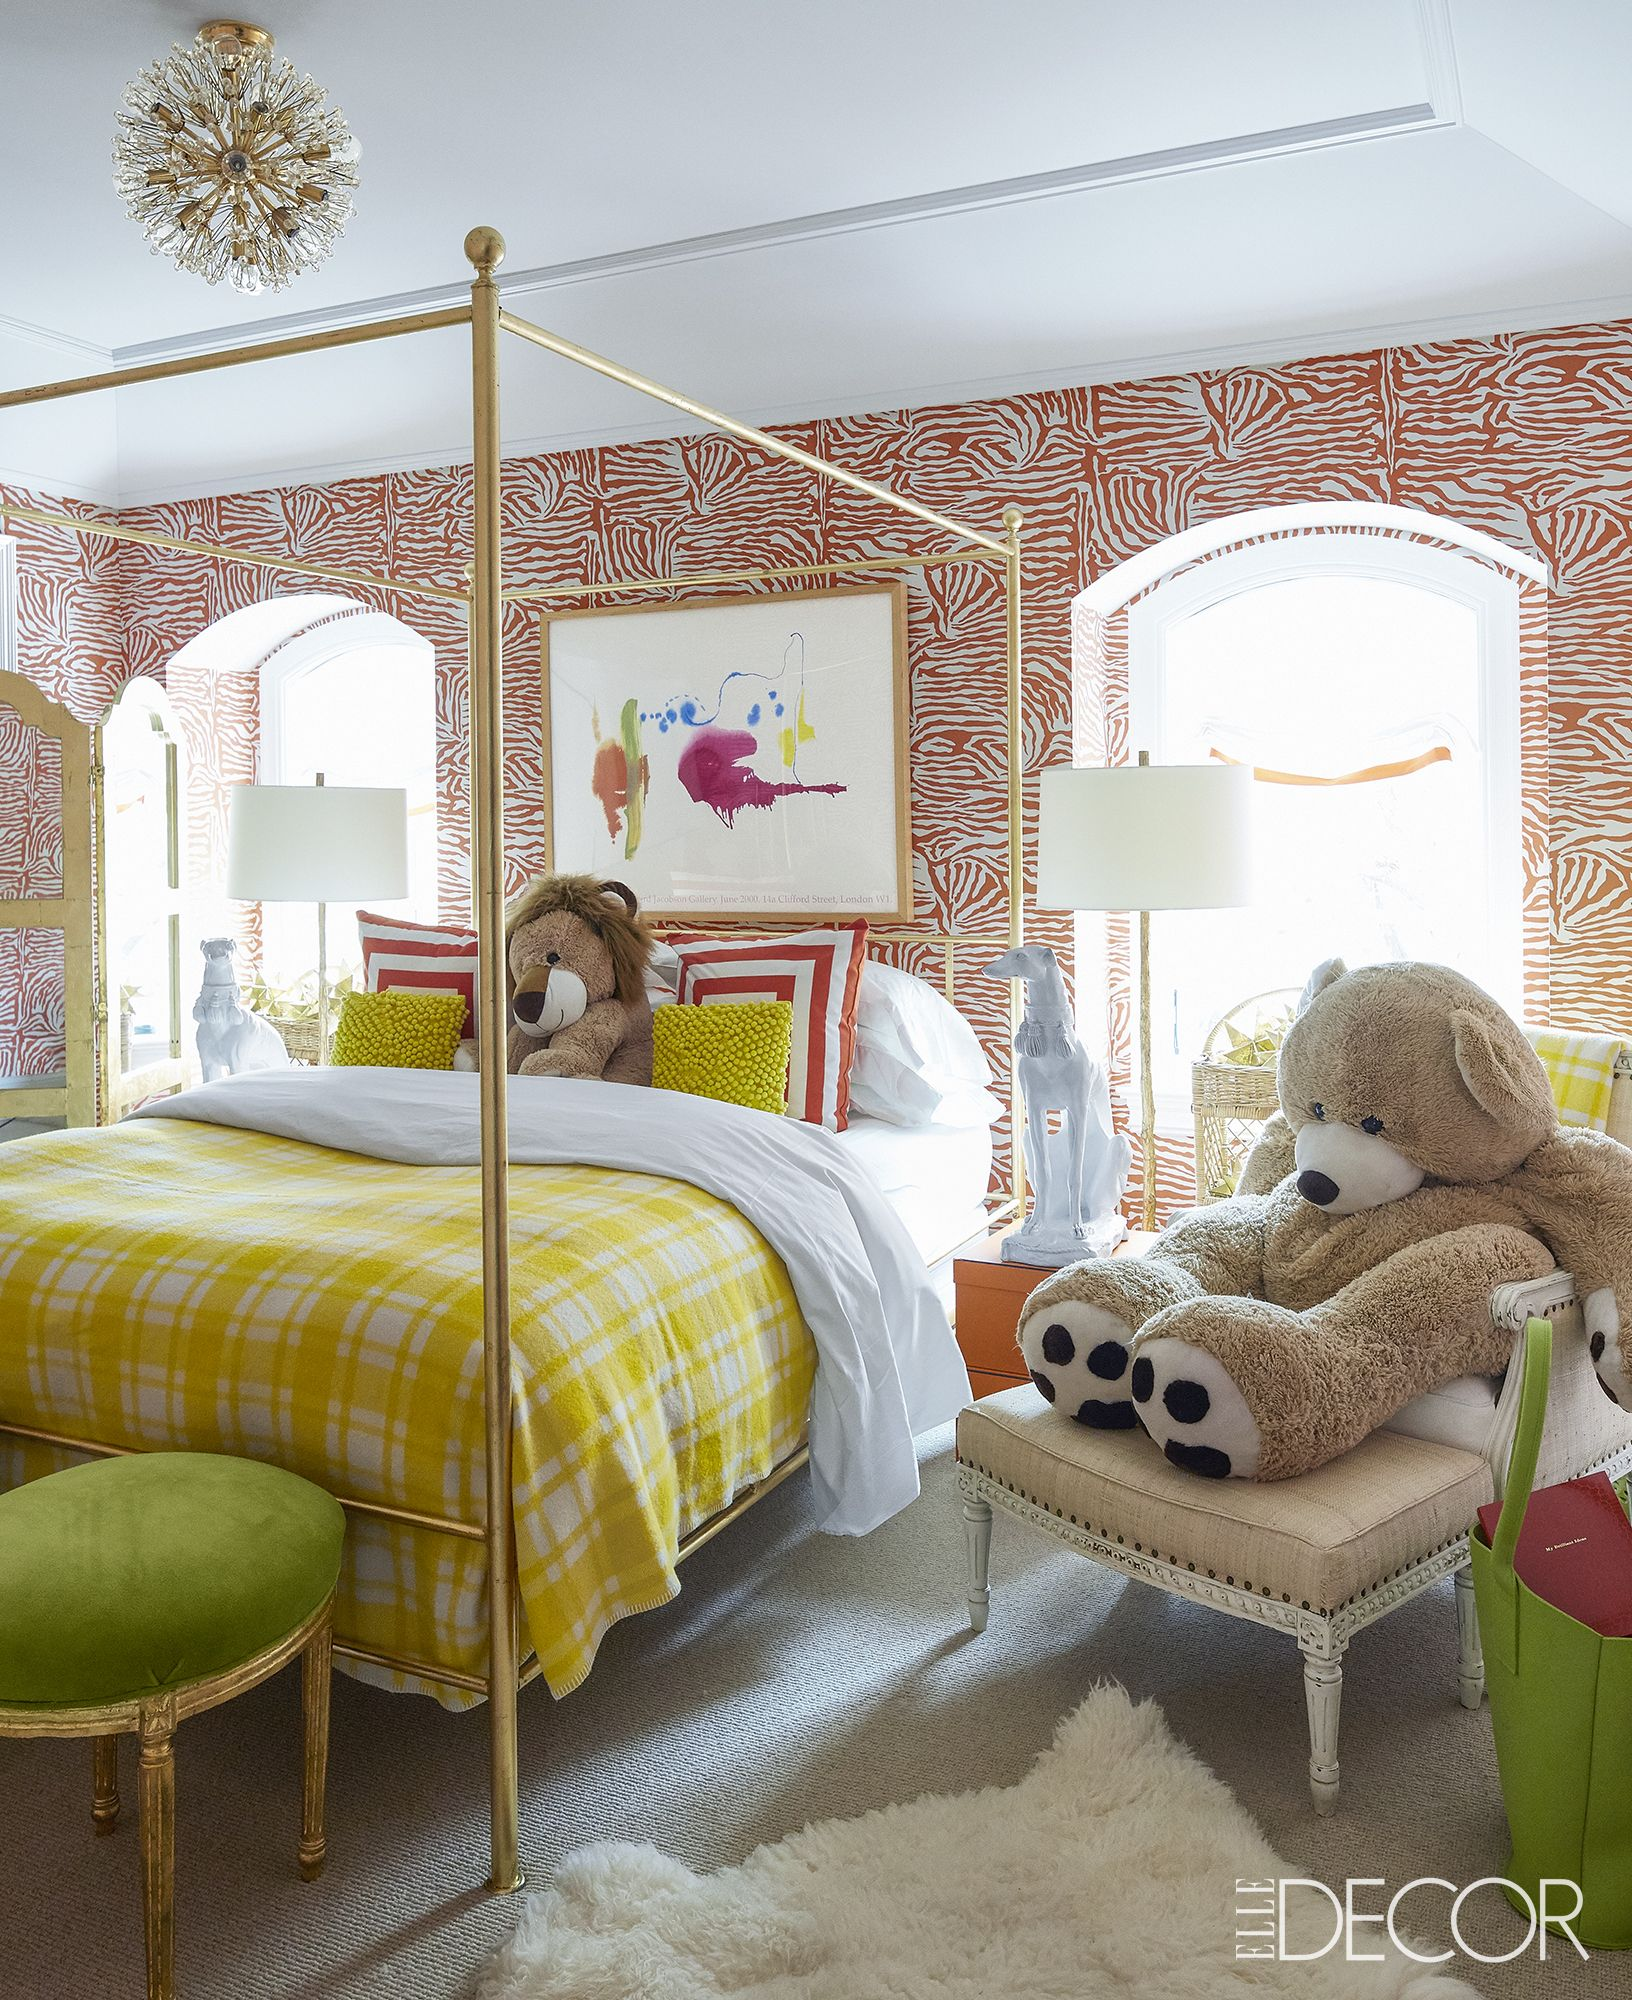 kids furnishings room pictures hgtv design rooms bedroom colorful fancy kid designs